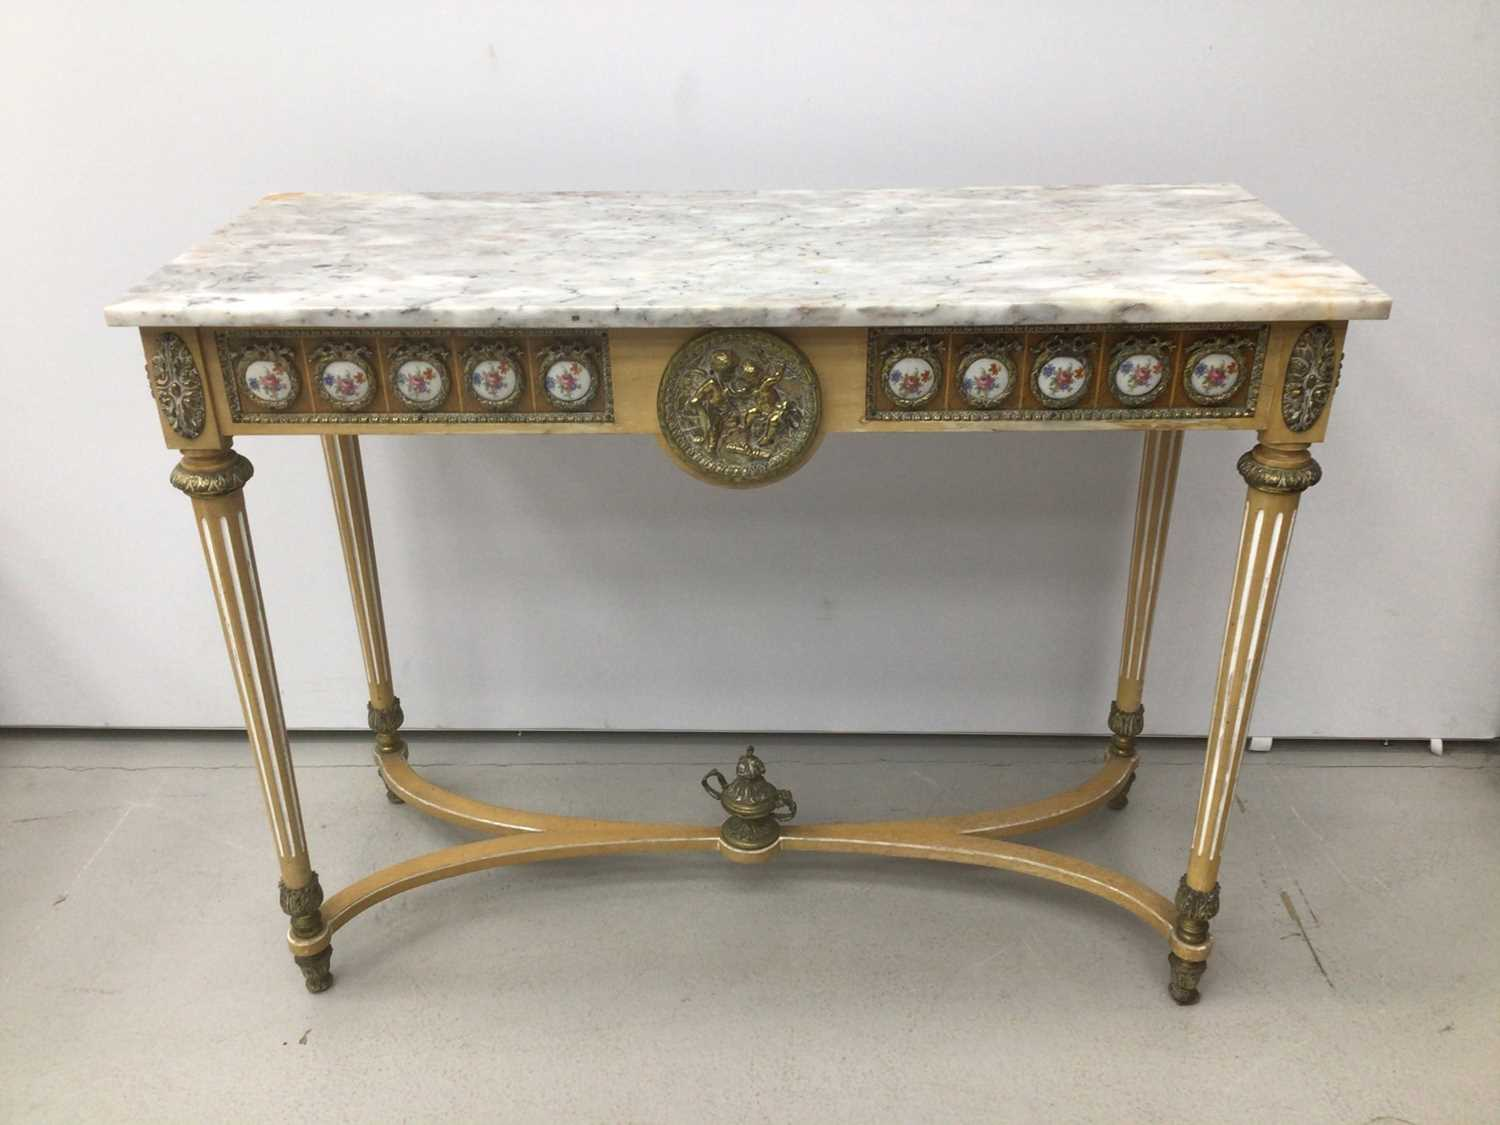 Antique style hall table with marble top, frieze inset with porcelain plaques on fluted turned legs